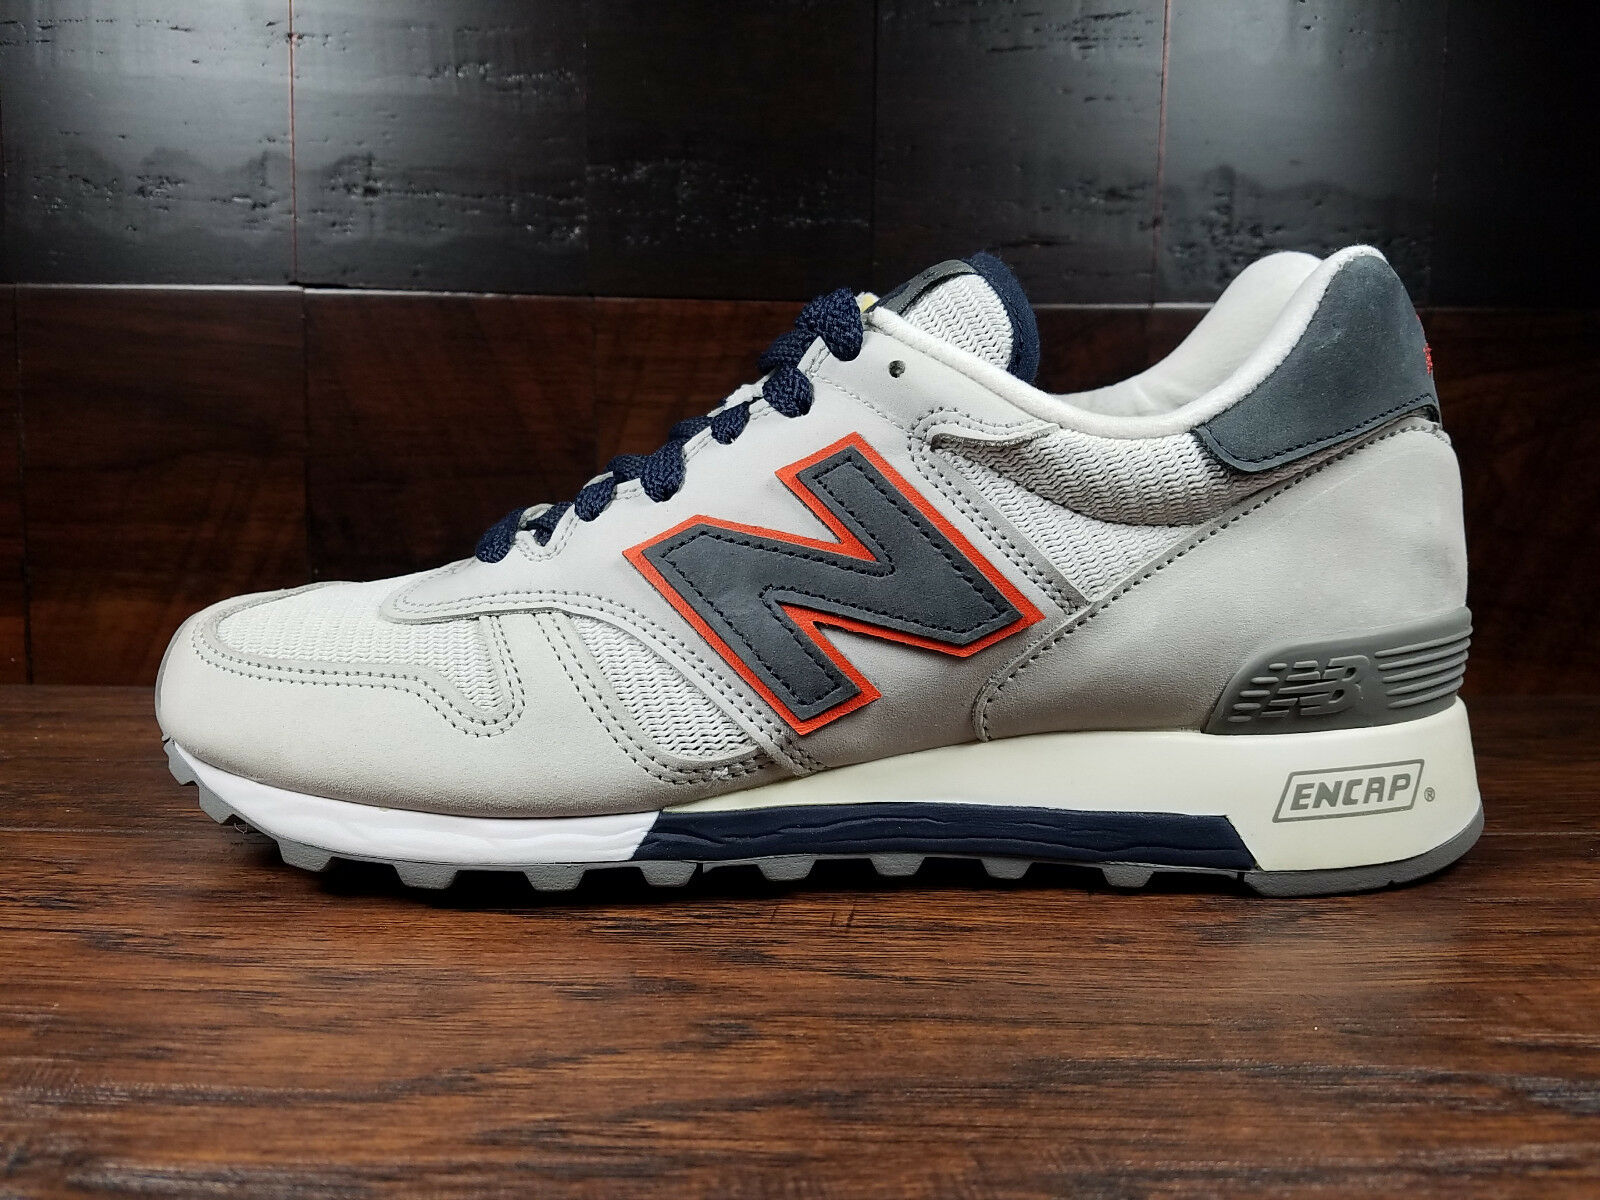 New Balance M1300GGO - USA 1300 (Grey   Navy   orange) MENS 7.5 (SAMPLE)